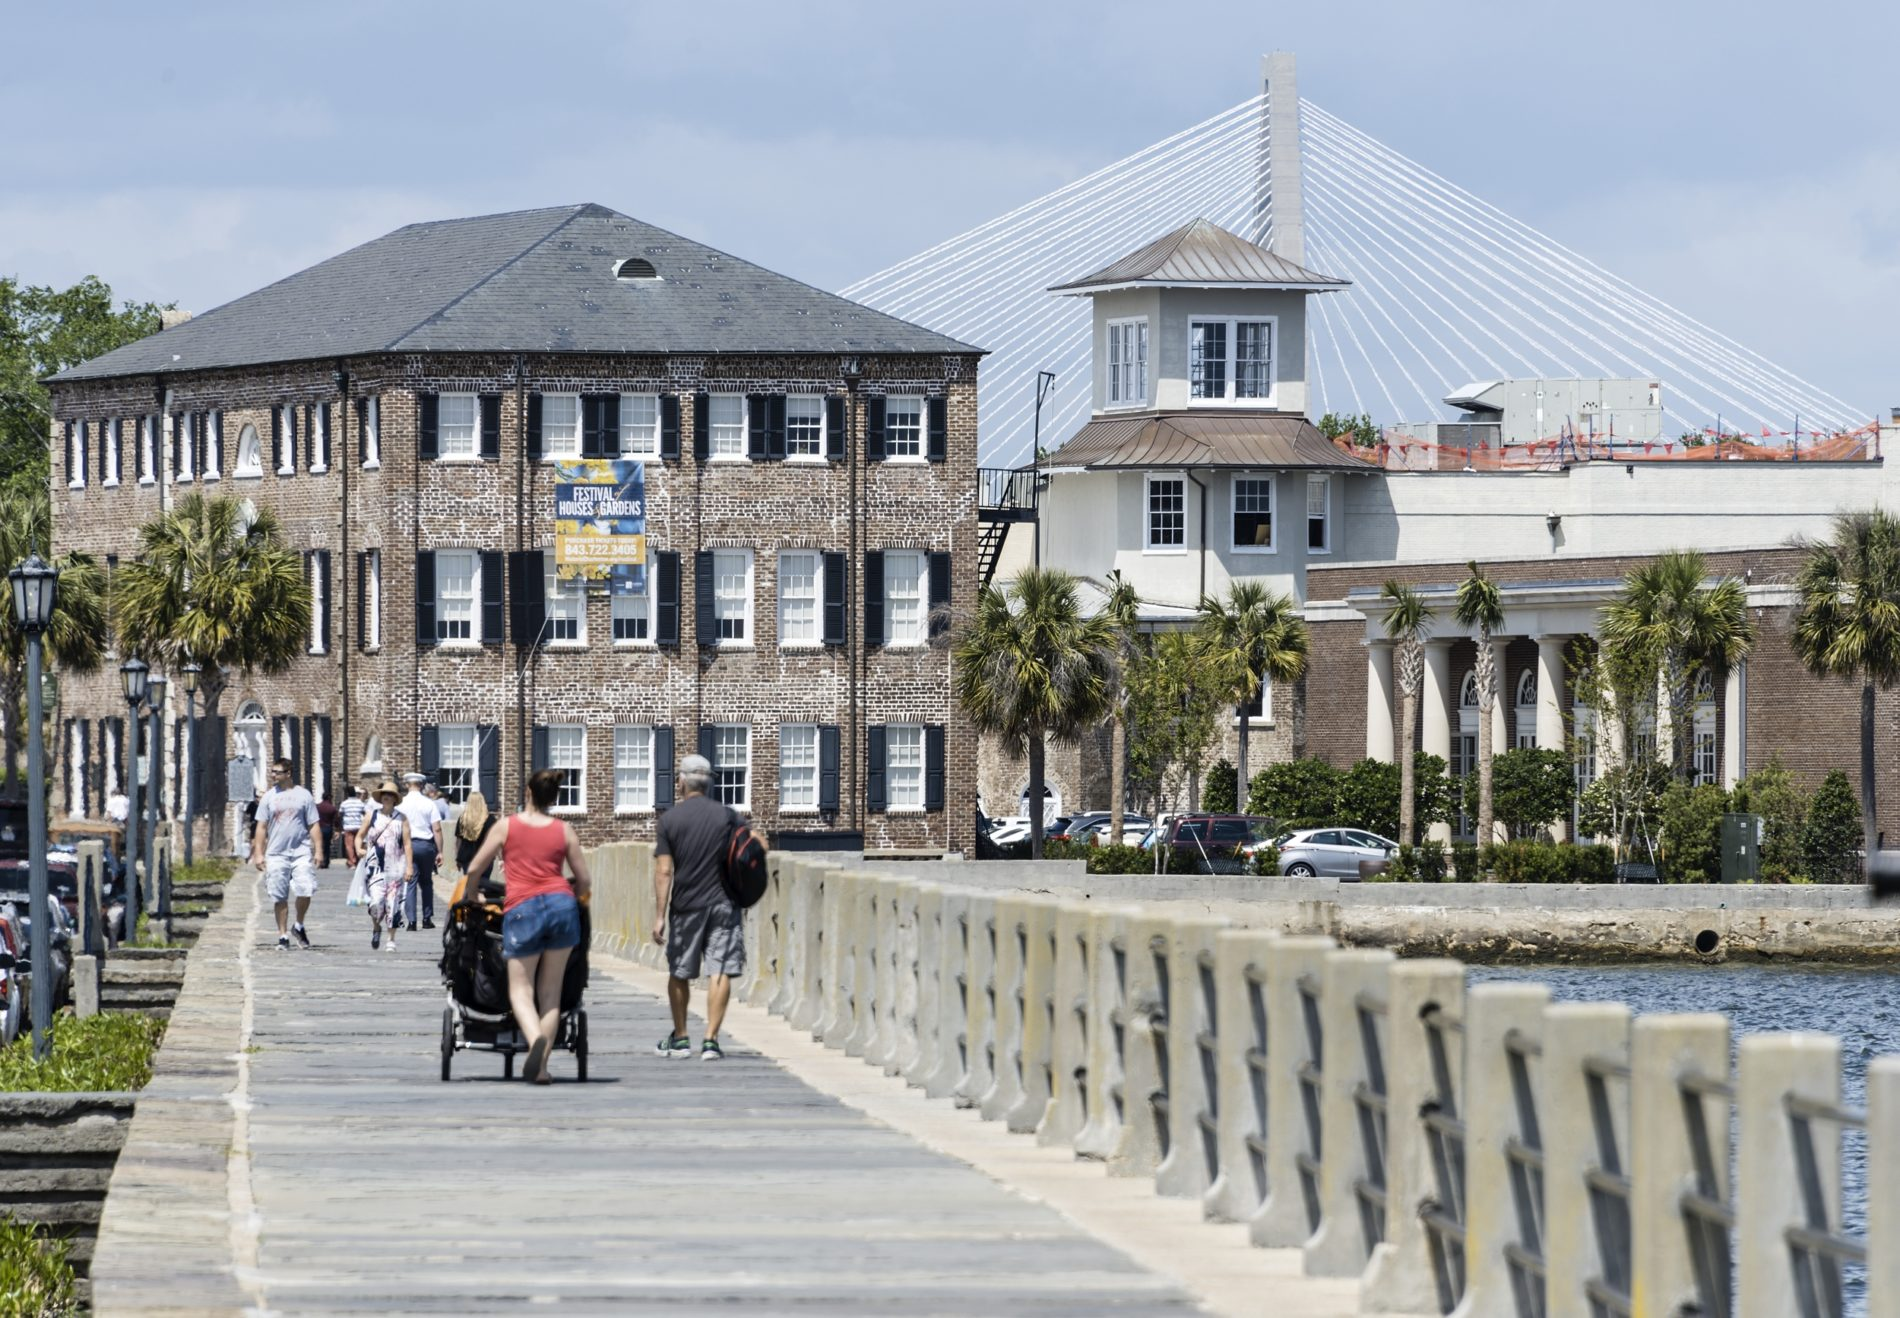 FITSNews – John Tecklenburg: Charleston Could Shut Down (Again) Over Covid-19 Spike